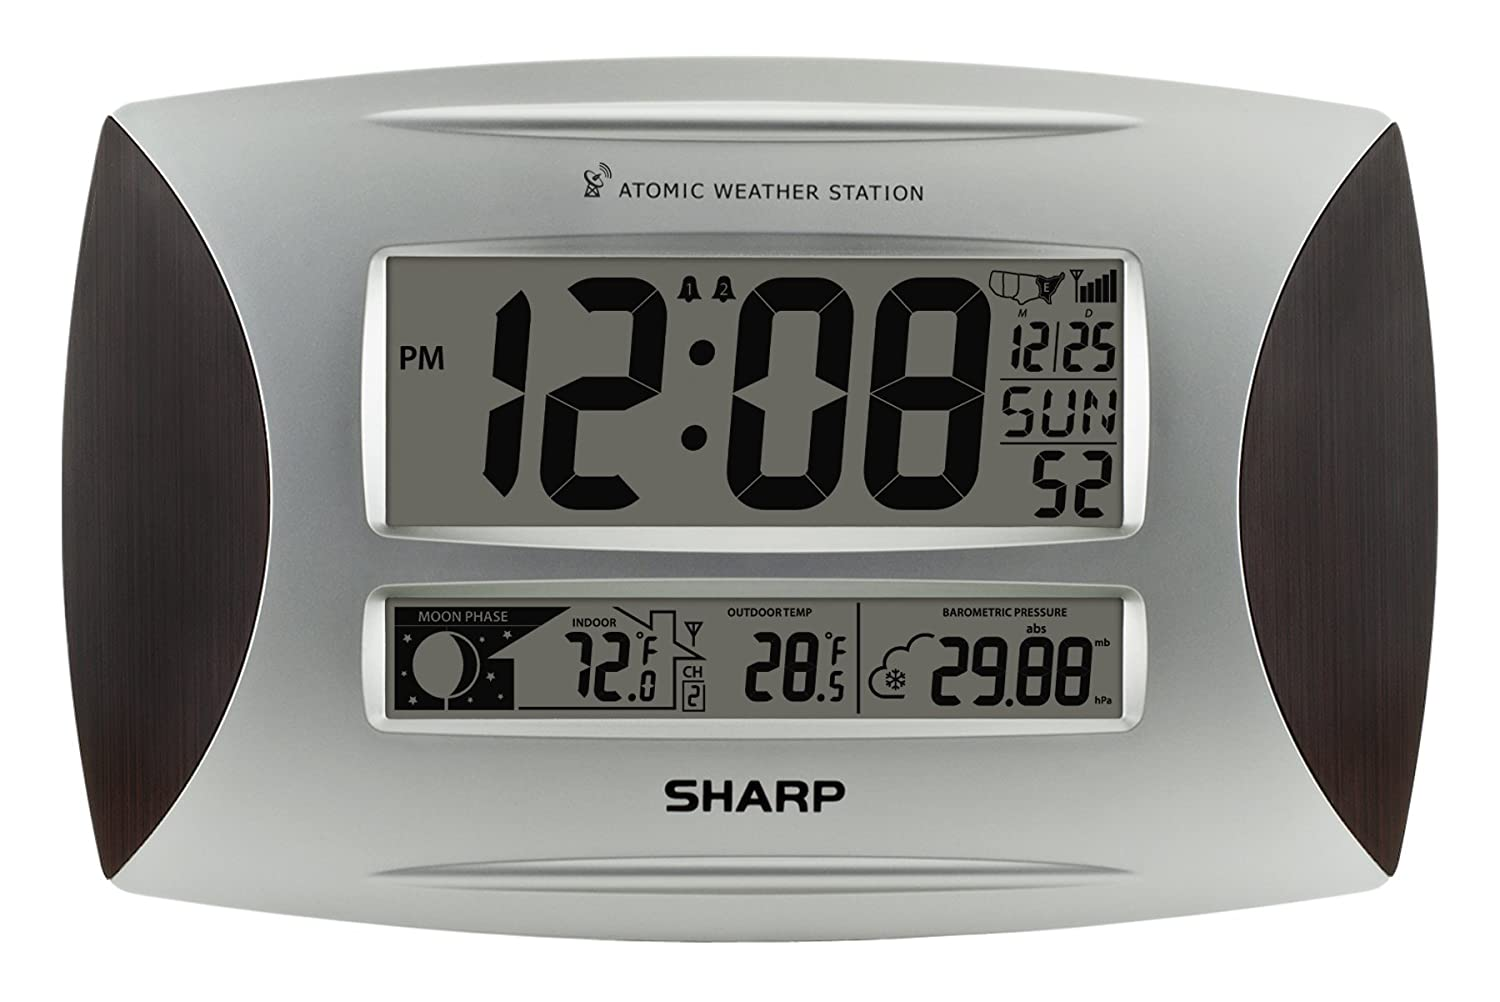 Amazon.com: Sutton SPC1005WG agudo Atómica El tiempo del reloj de pared: Home & Kitchen